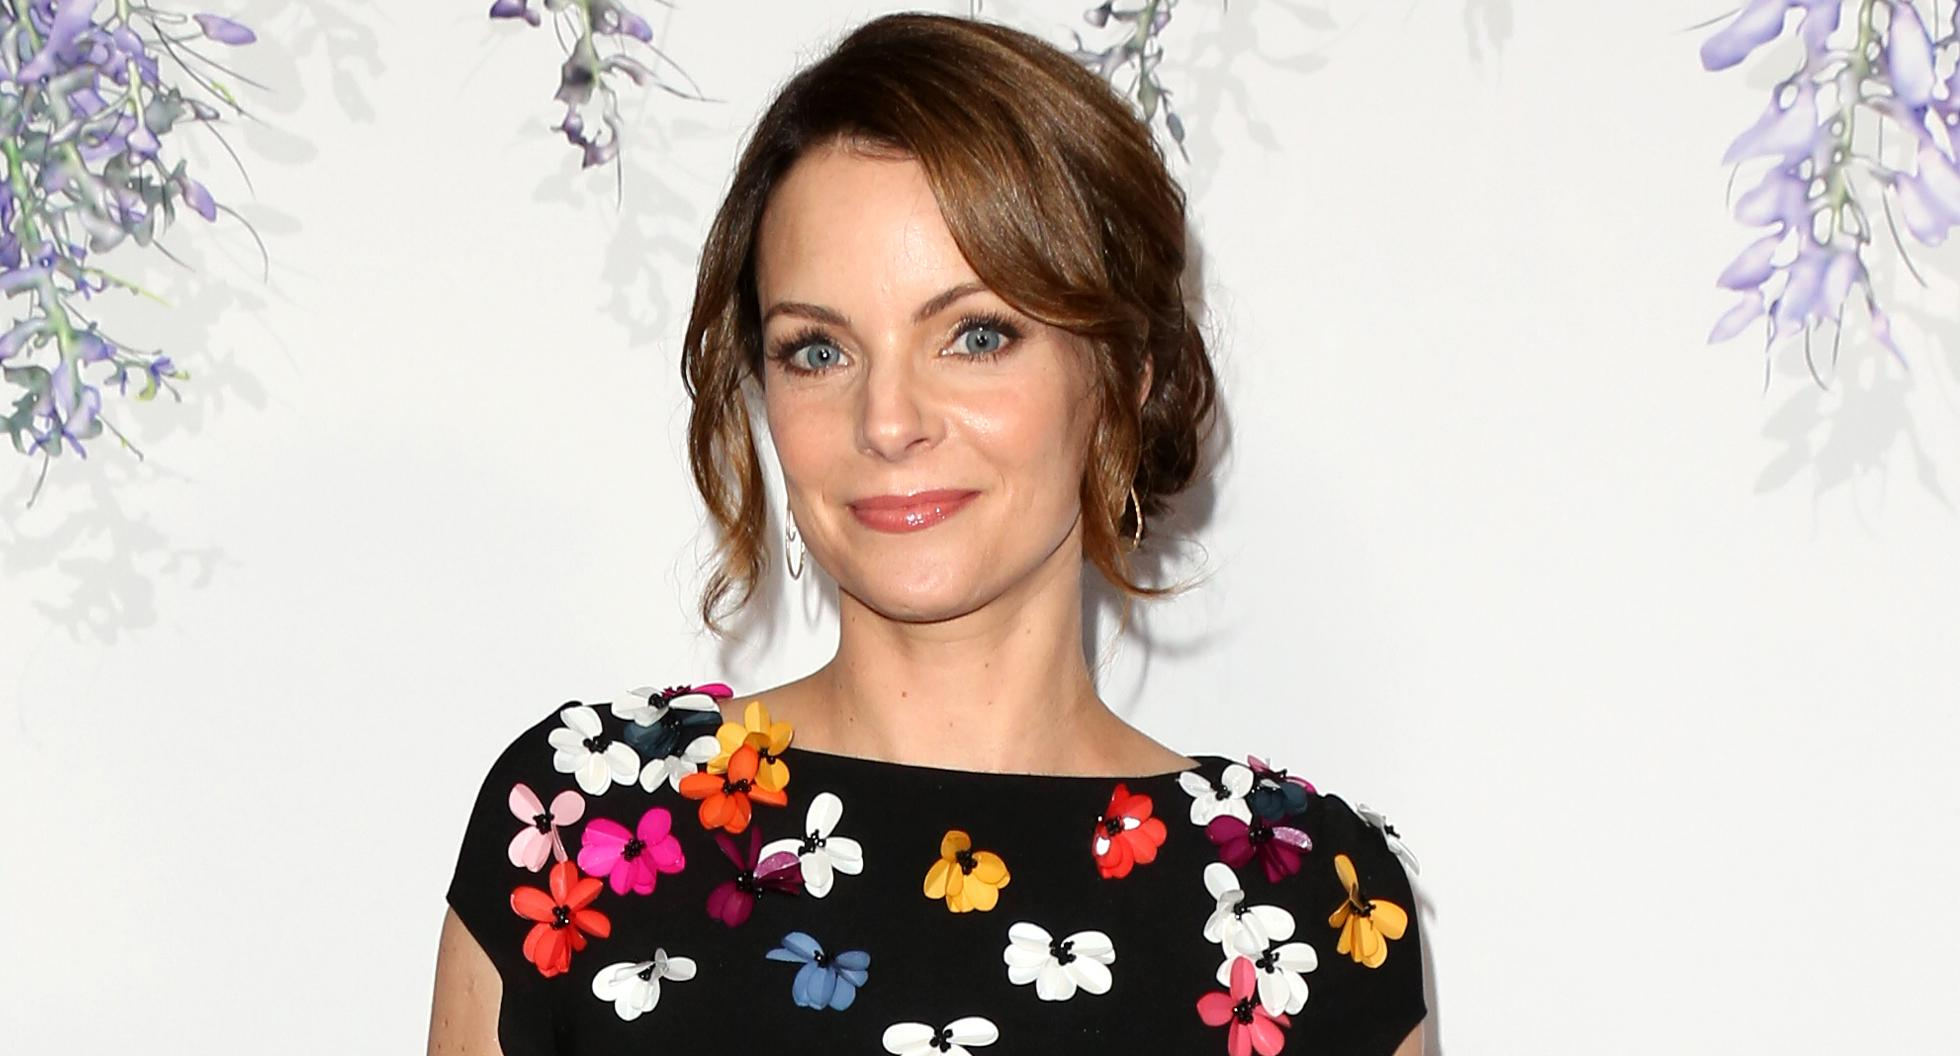 Interview of the Week: Kimberly Williams-Paisley